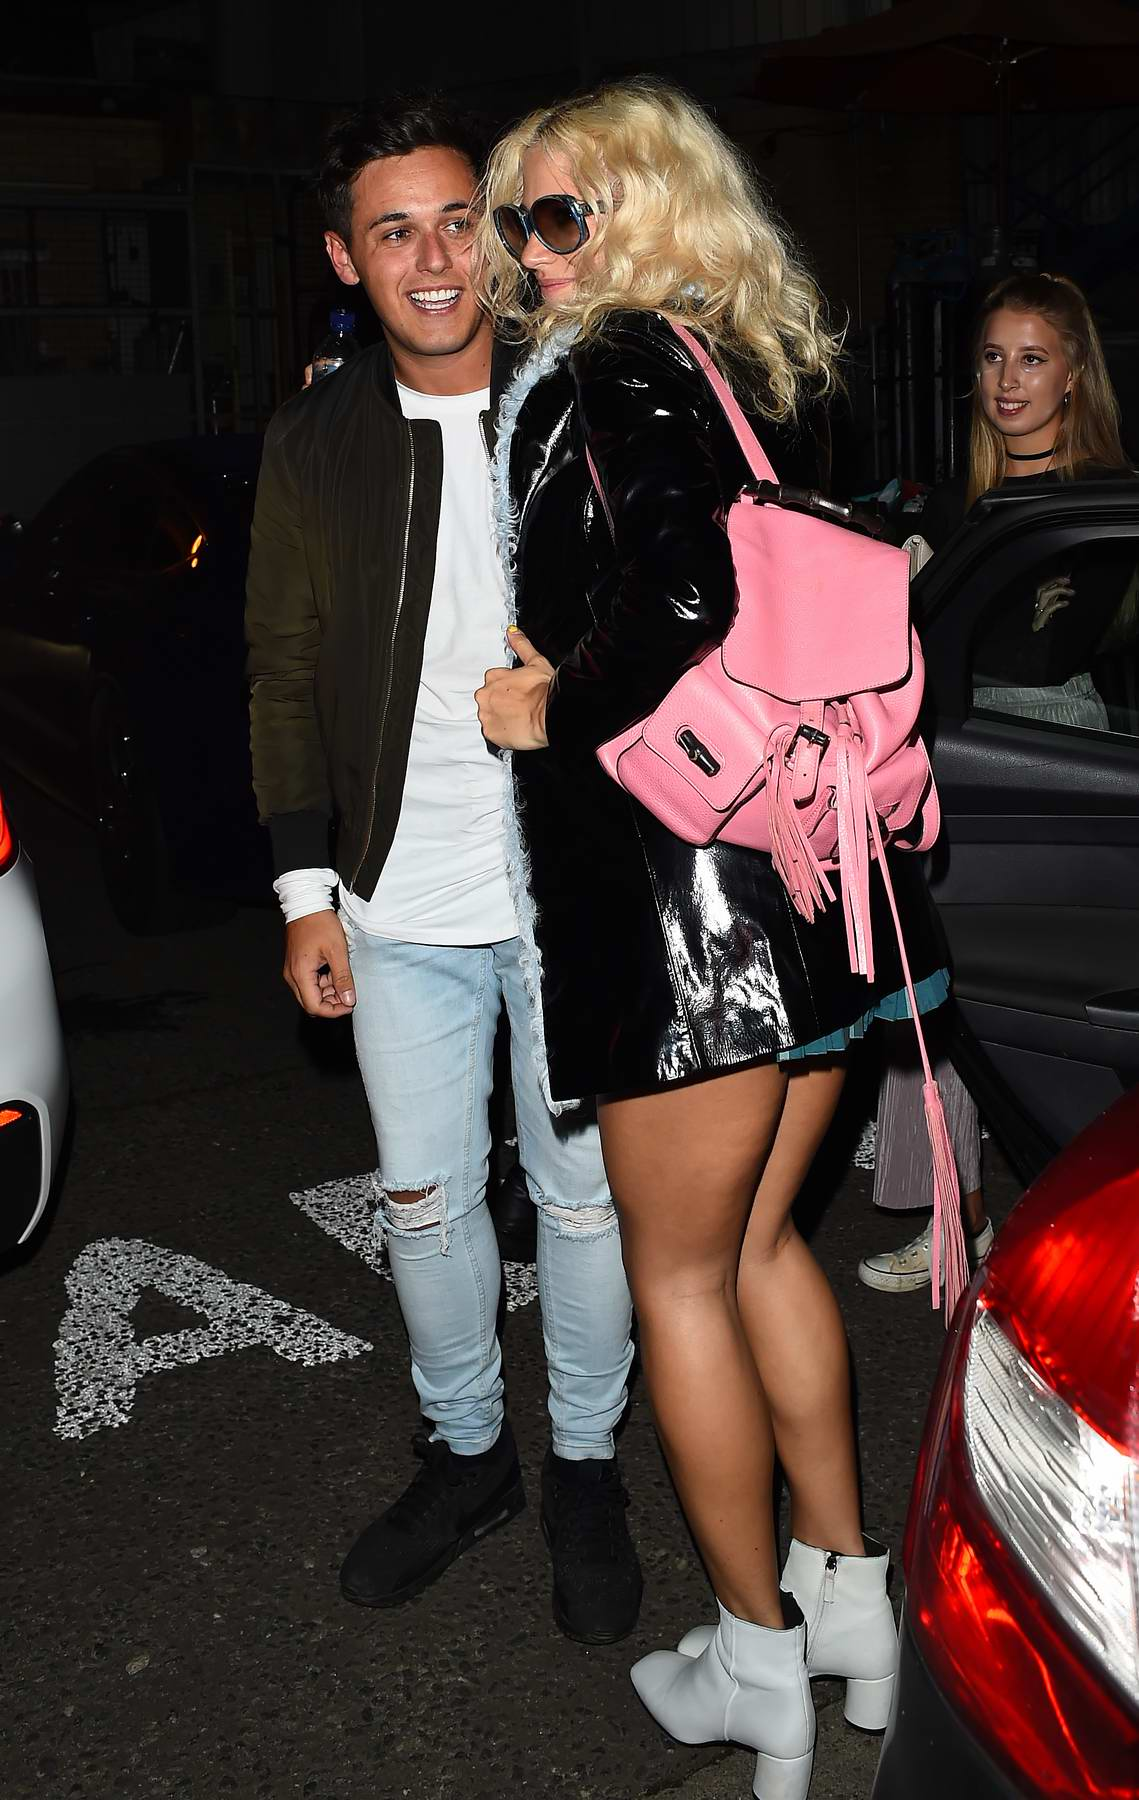 Pixie Lott seen after she performs at Freshers Week Party in London